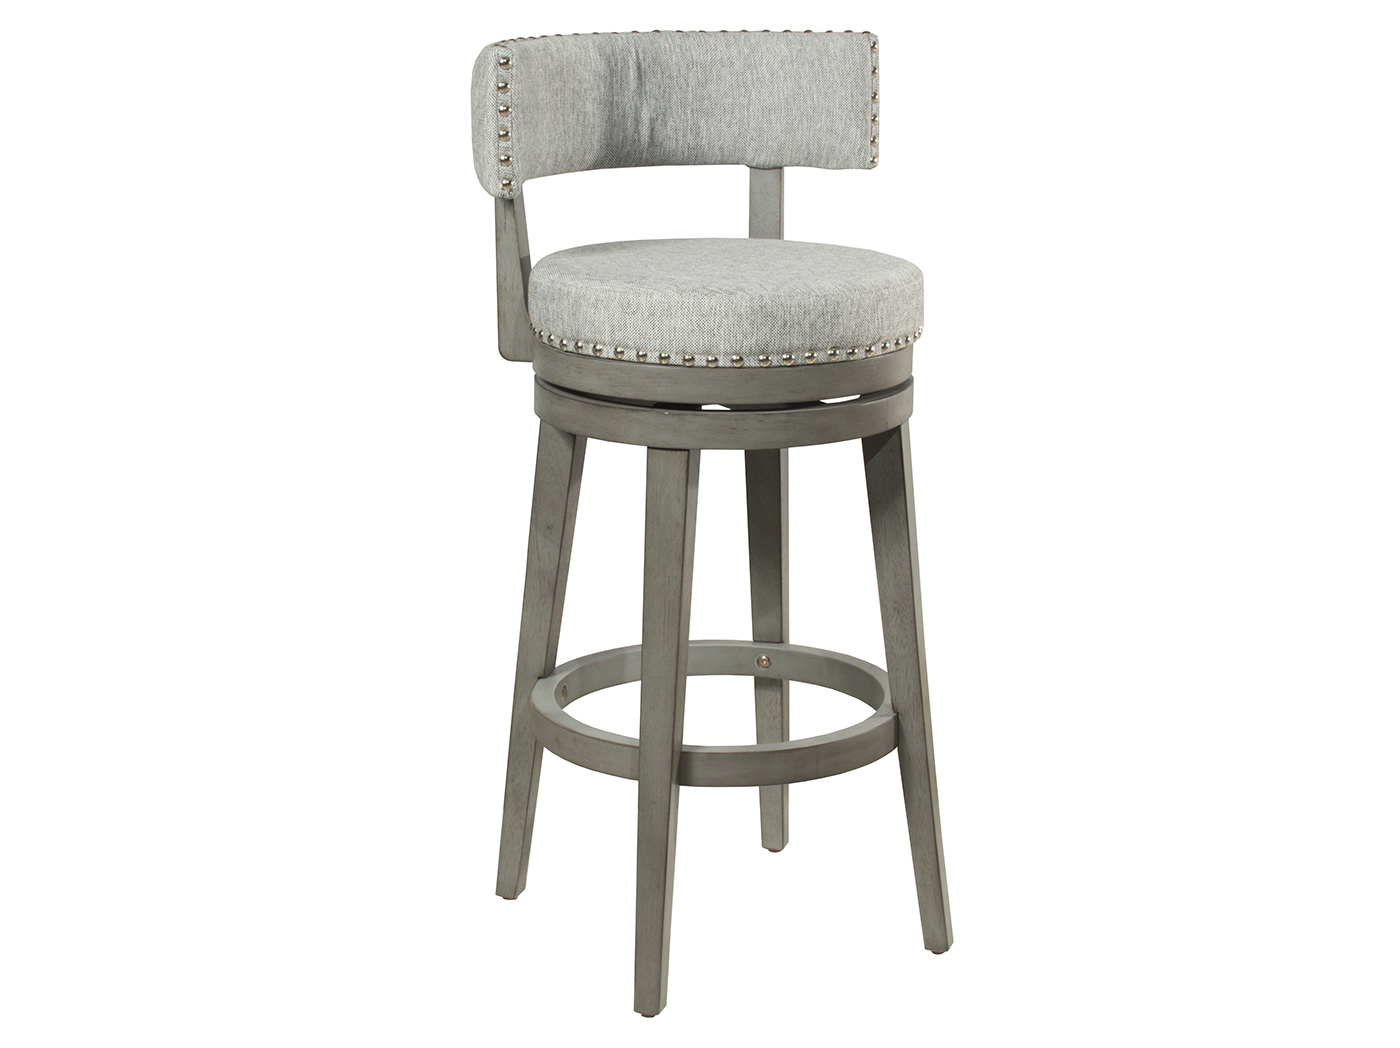 "Lawton 26"" Swivel Barstool"